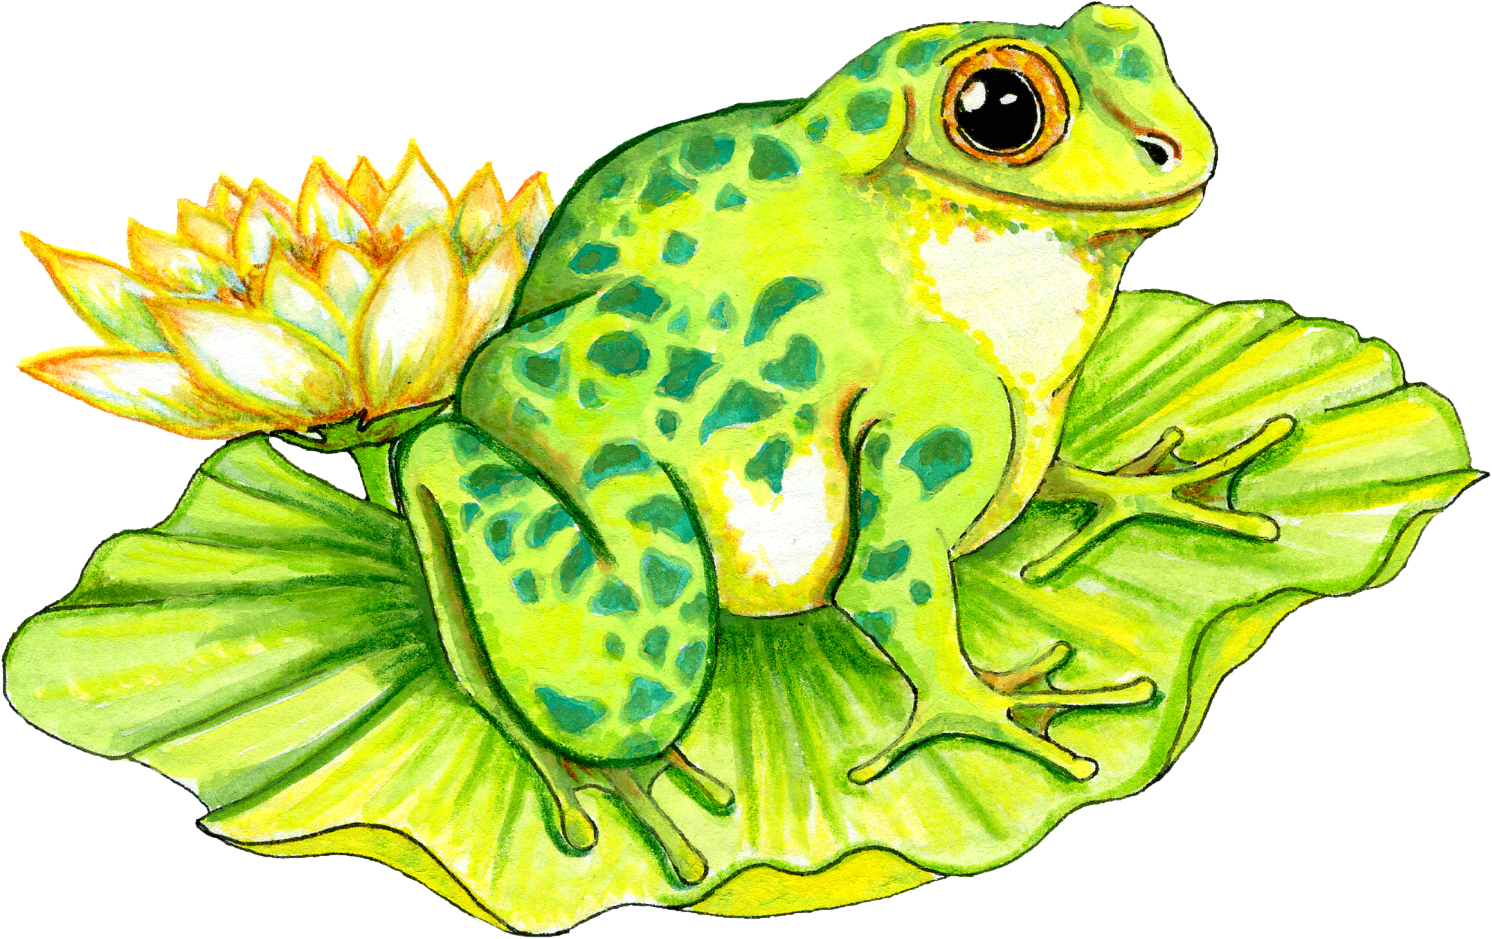 Cartoon Frog On Lily Pad - ClipArt Best - ClipArt Best